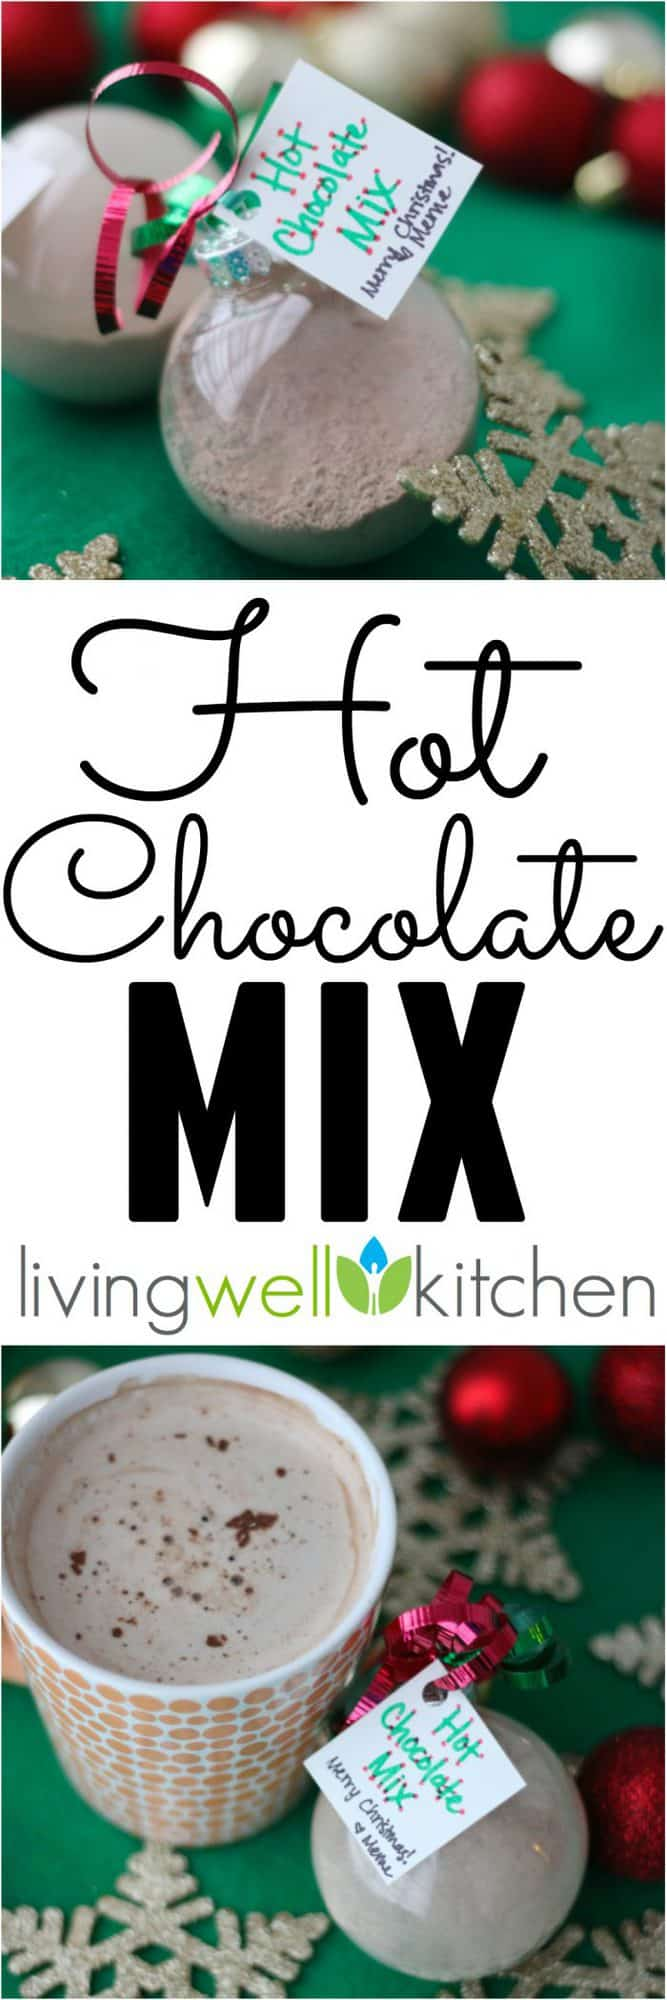 Easy hot chocolate mix has less than 5 ingredients and less sugar than most homemade recipes. Great for Christmas gifts!